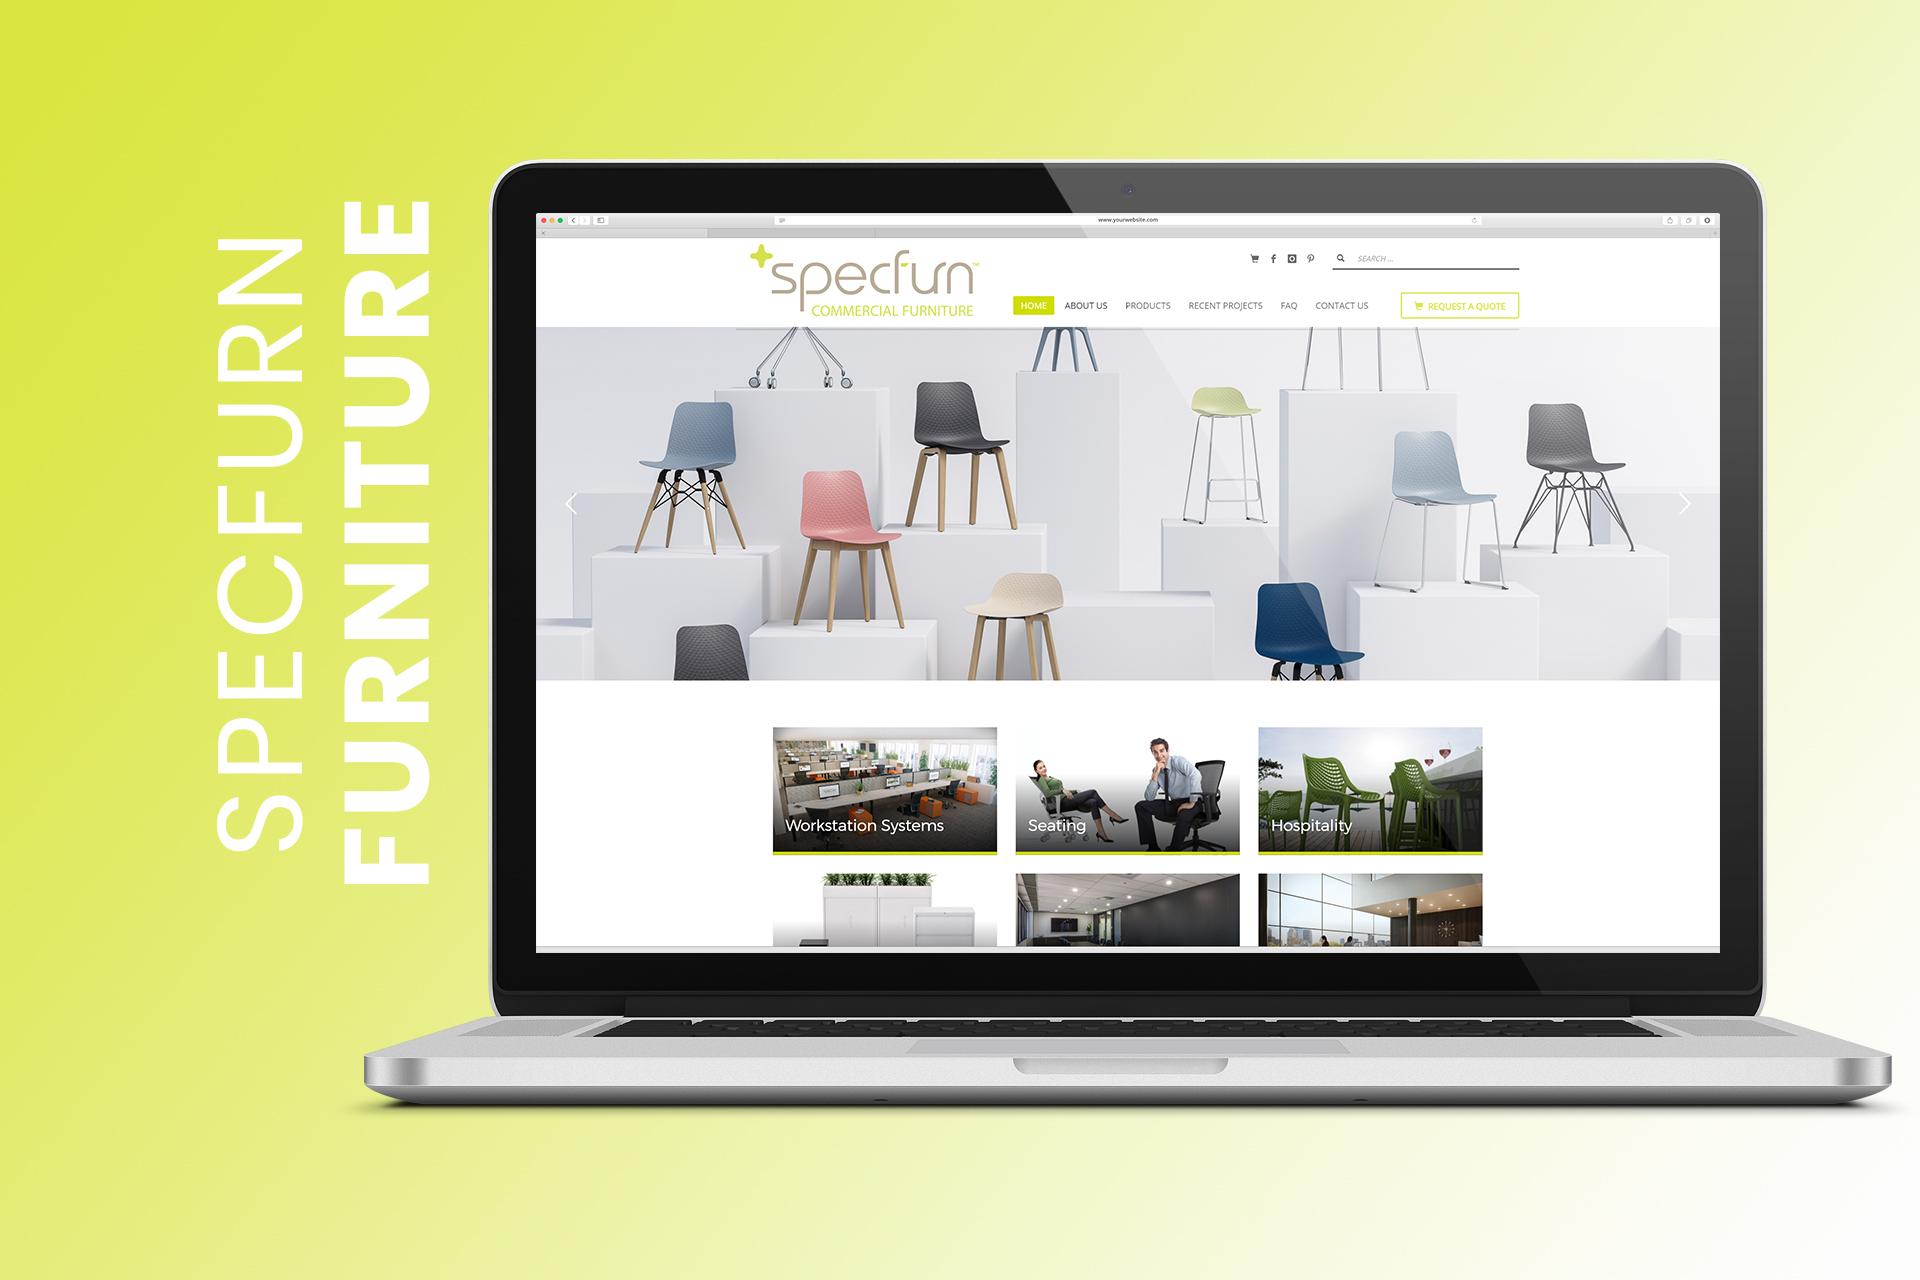 Specfurn Commercial Furniture